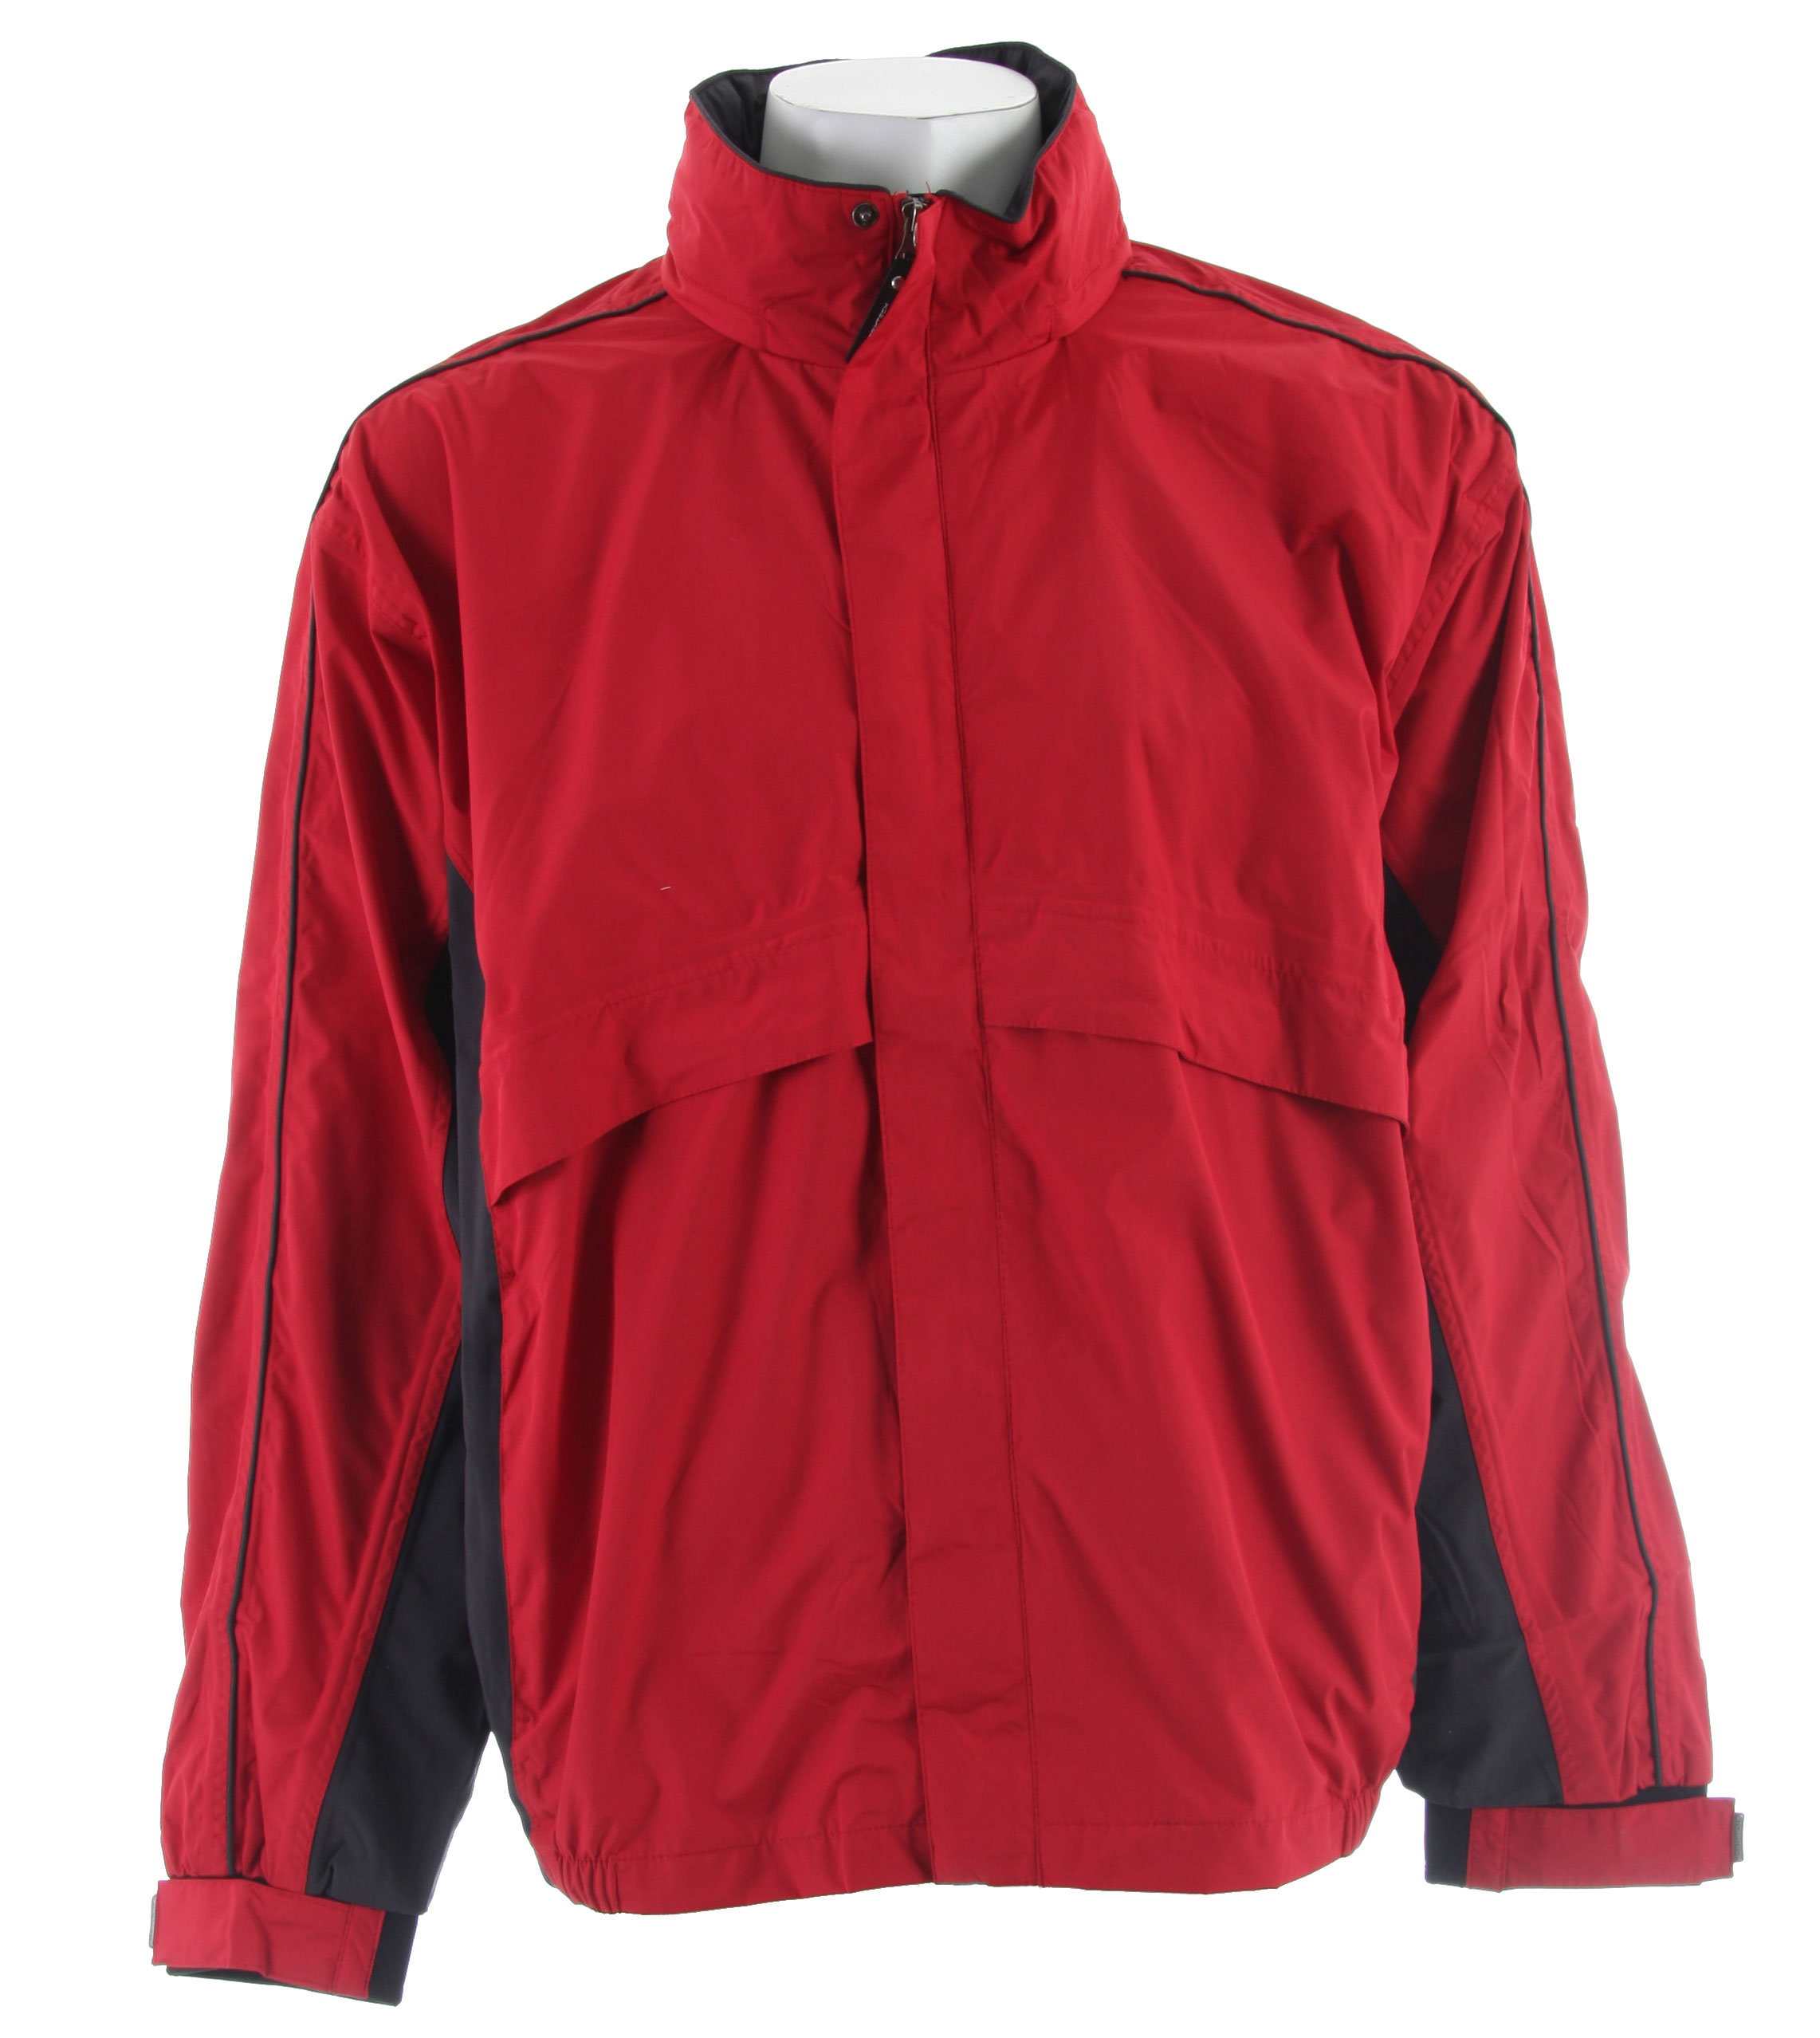 Stormtech Trident Microflex Rainshell Jacket Red/Granite - $53.95